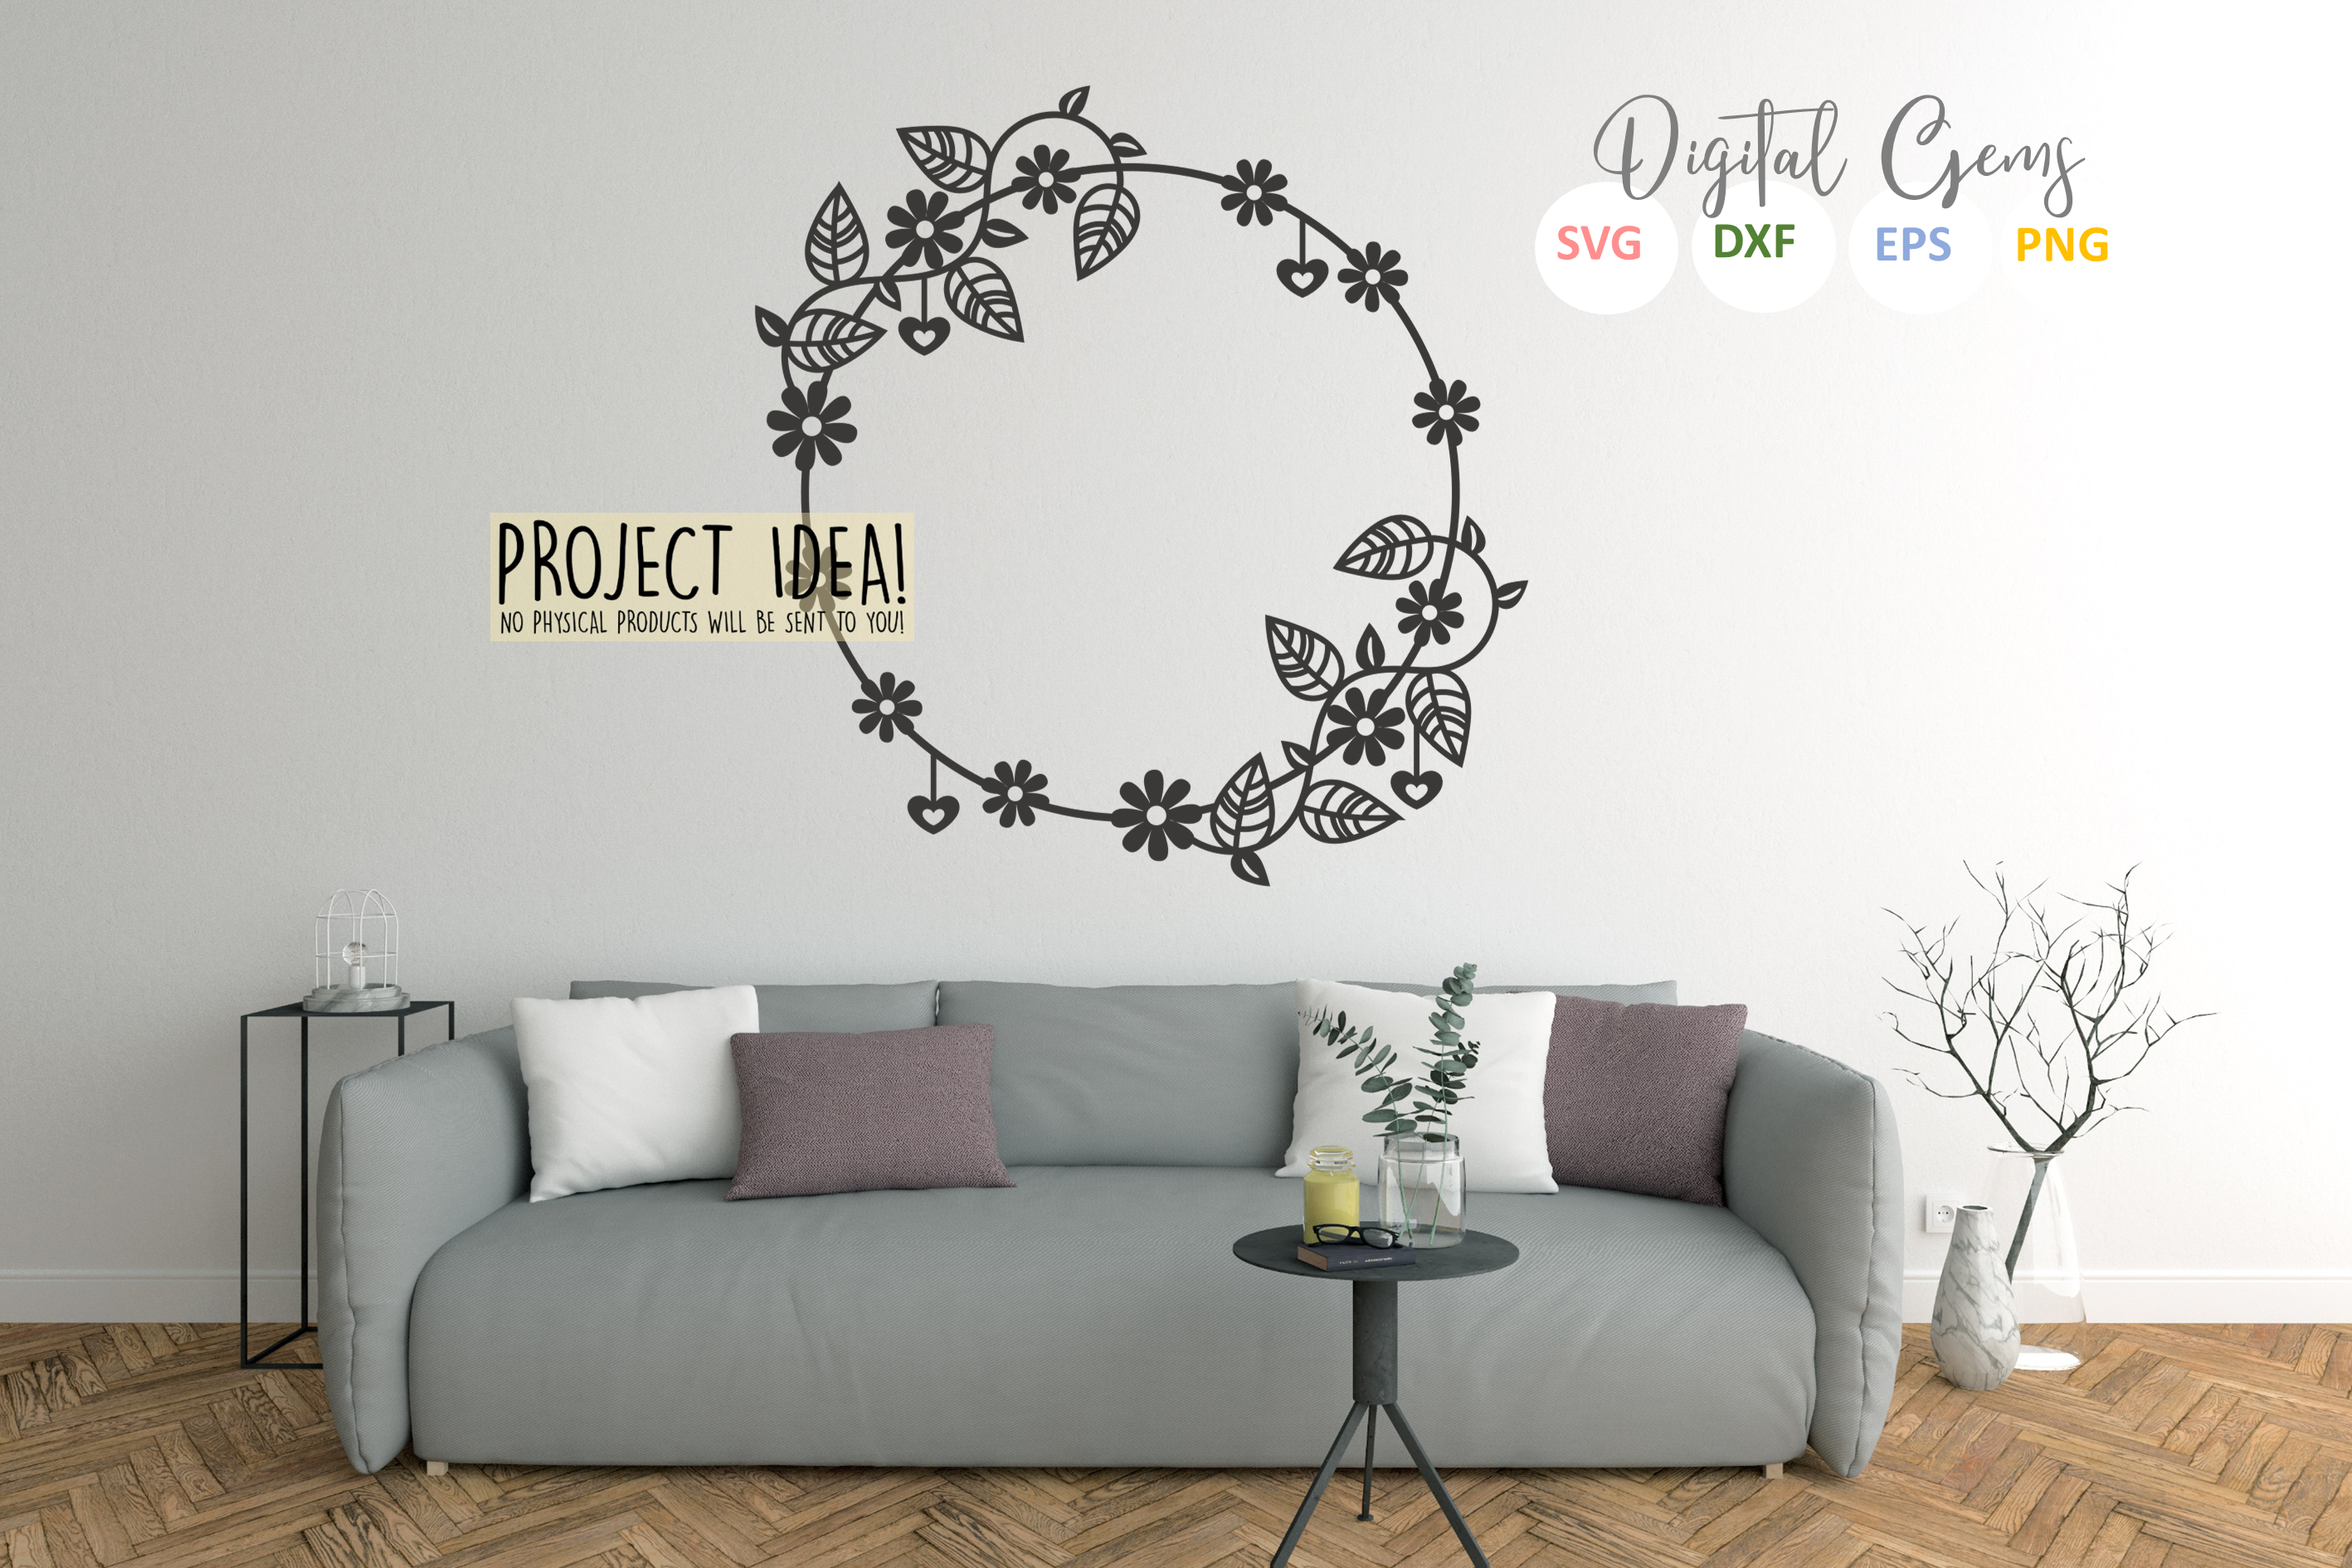 Flower frame paper cut design. SVG / DXF / EPS / PNG files example image 5